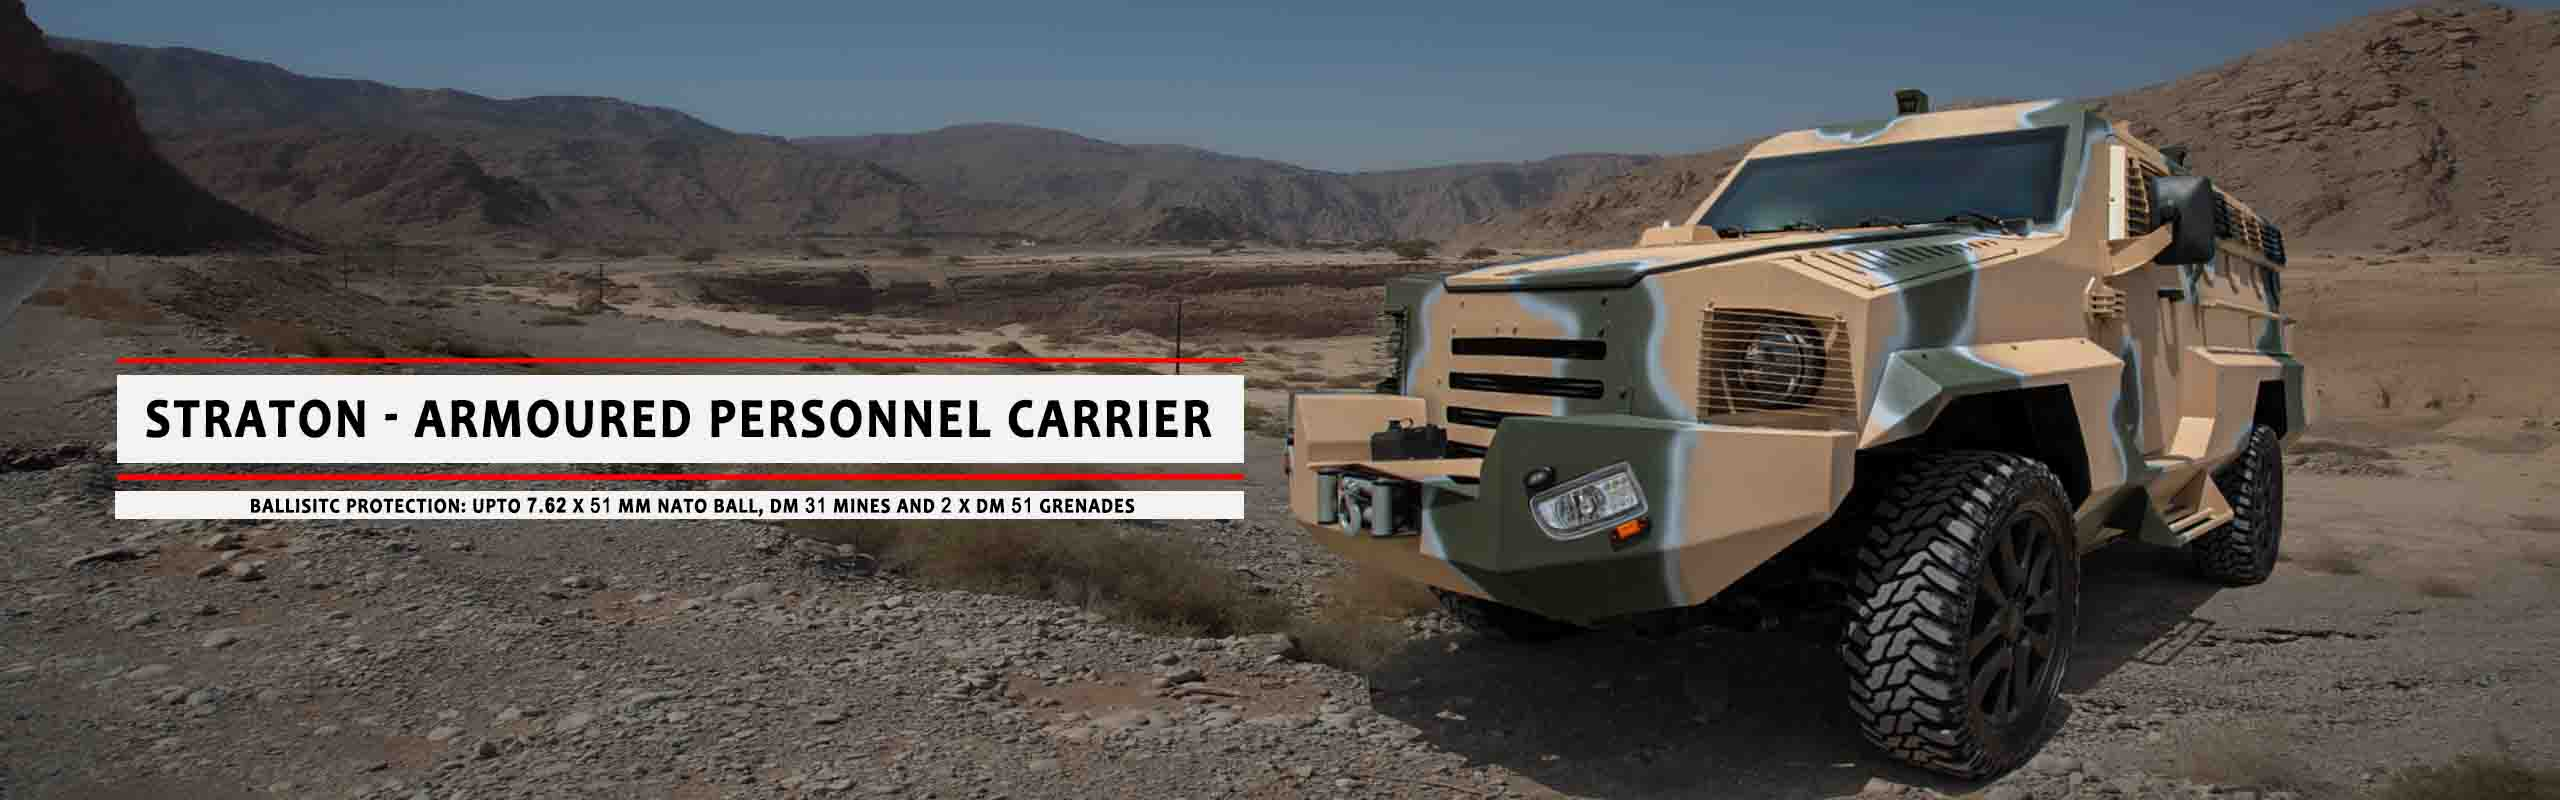 Mahindra Armoured Vehicles UAE - Jordan| Straton Armoured personel Carrier